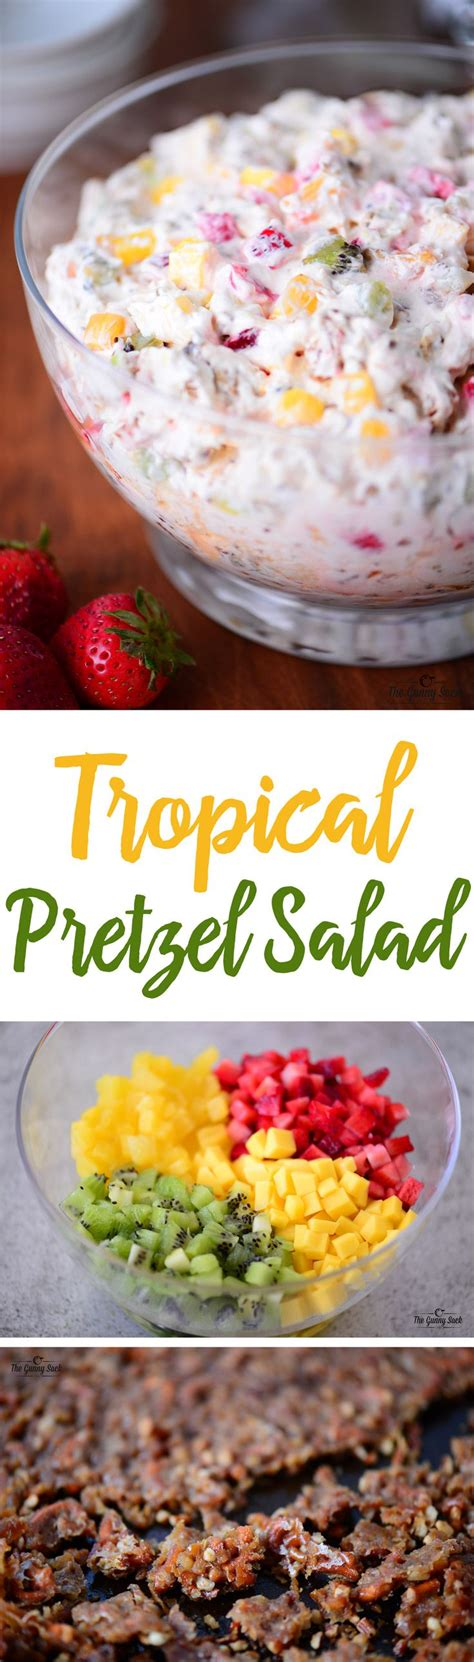 summertime tropical fruit salad recipe allrecipescom tropical fruit pretzel salad recipe sacks summer and